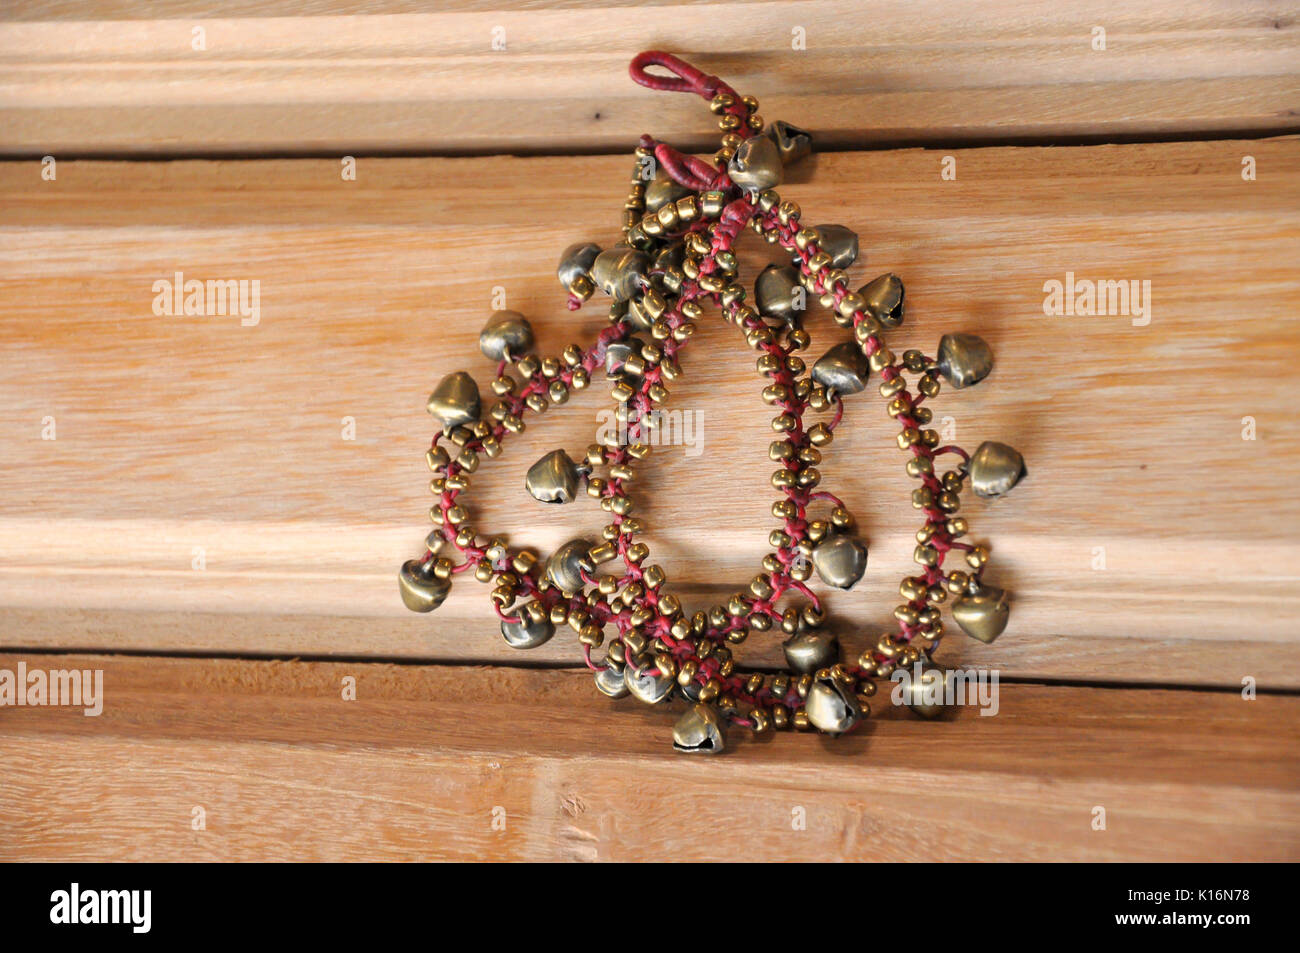 an worn toddler photo ankle called bracelet photos images chain around stock or ornament is anklet alamy also